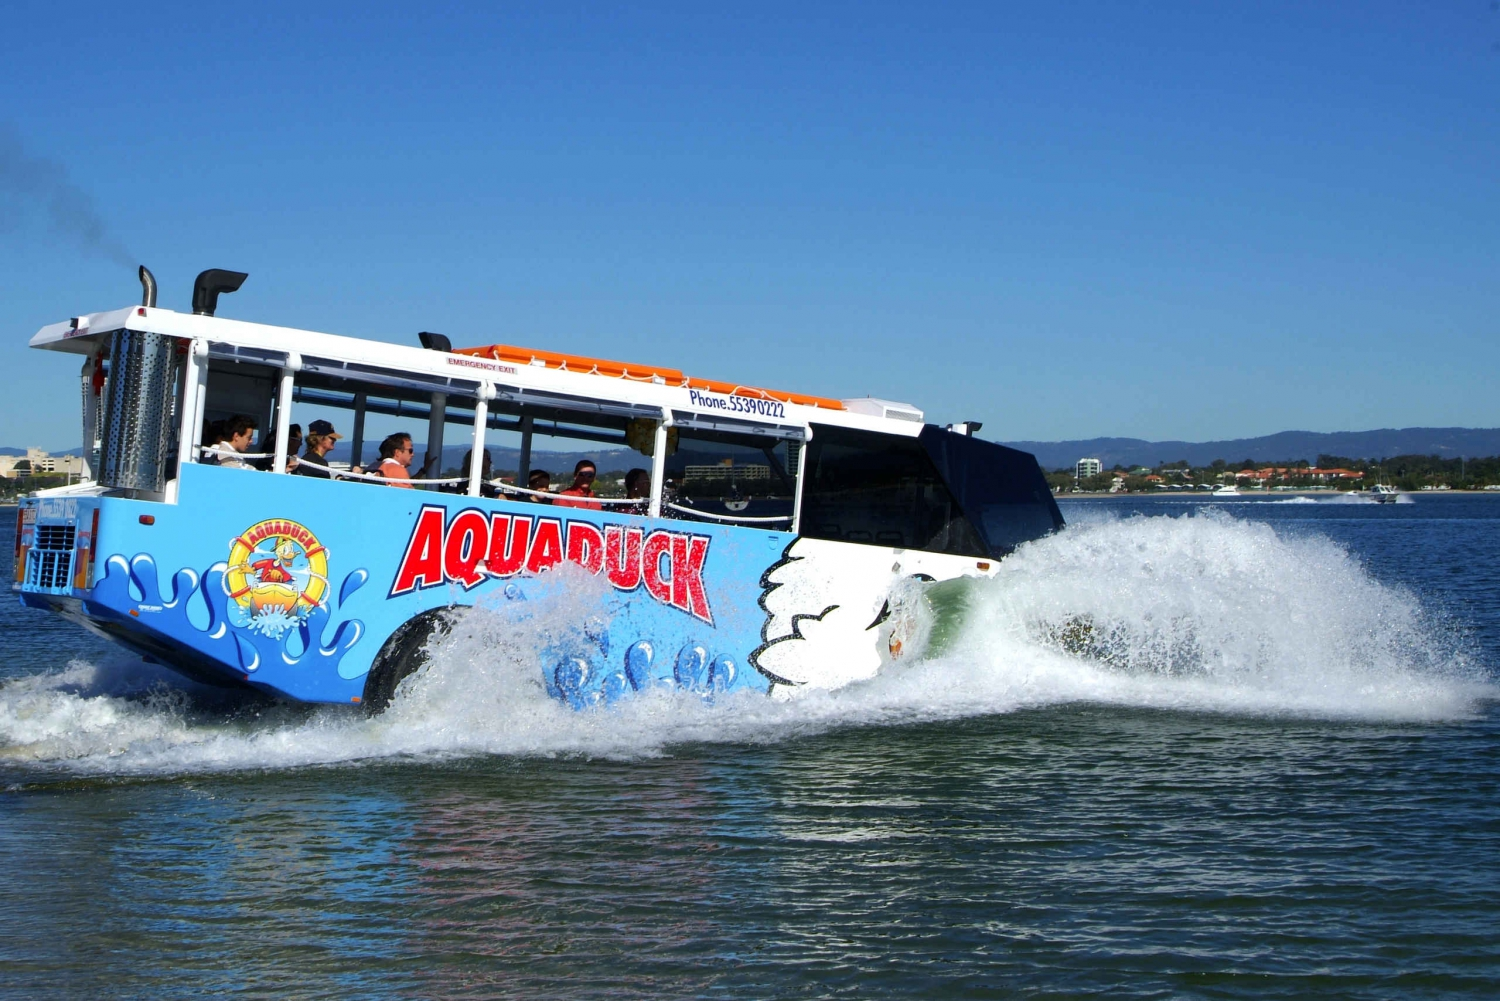 Aquaduck City Tour and River Cruise